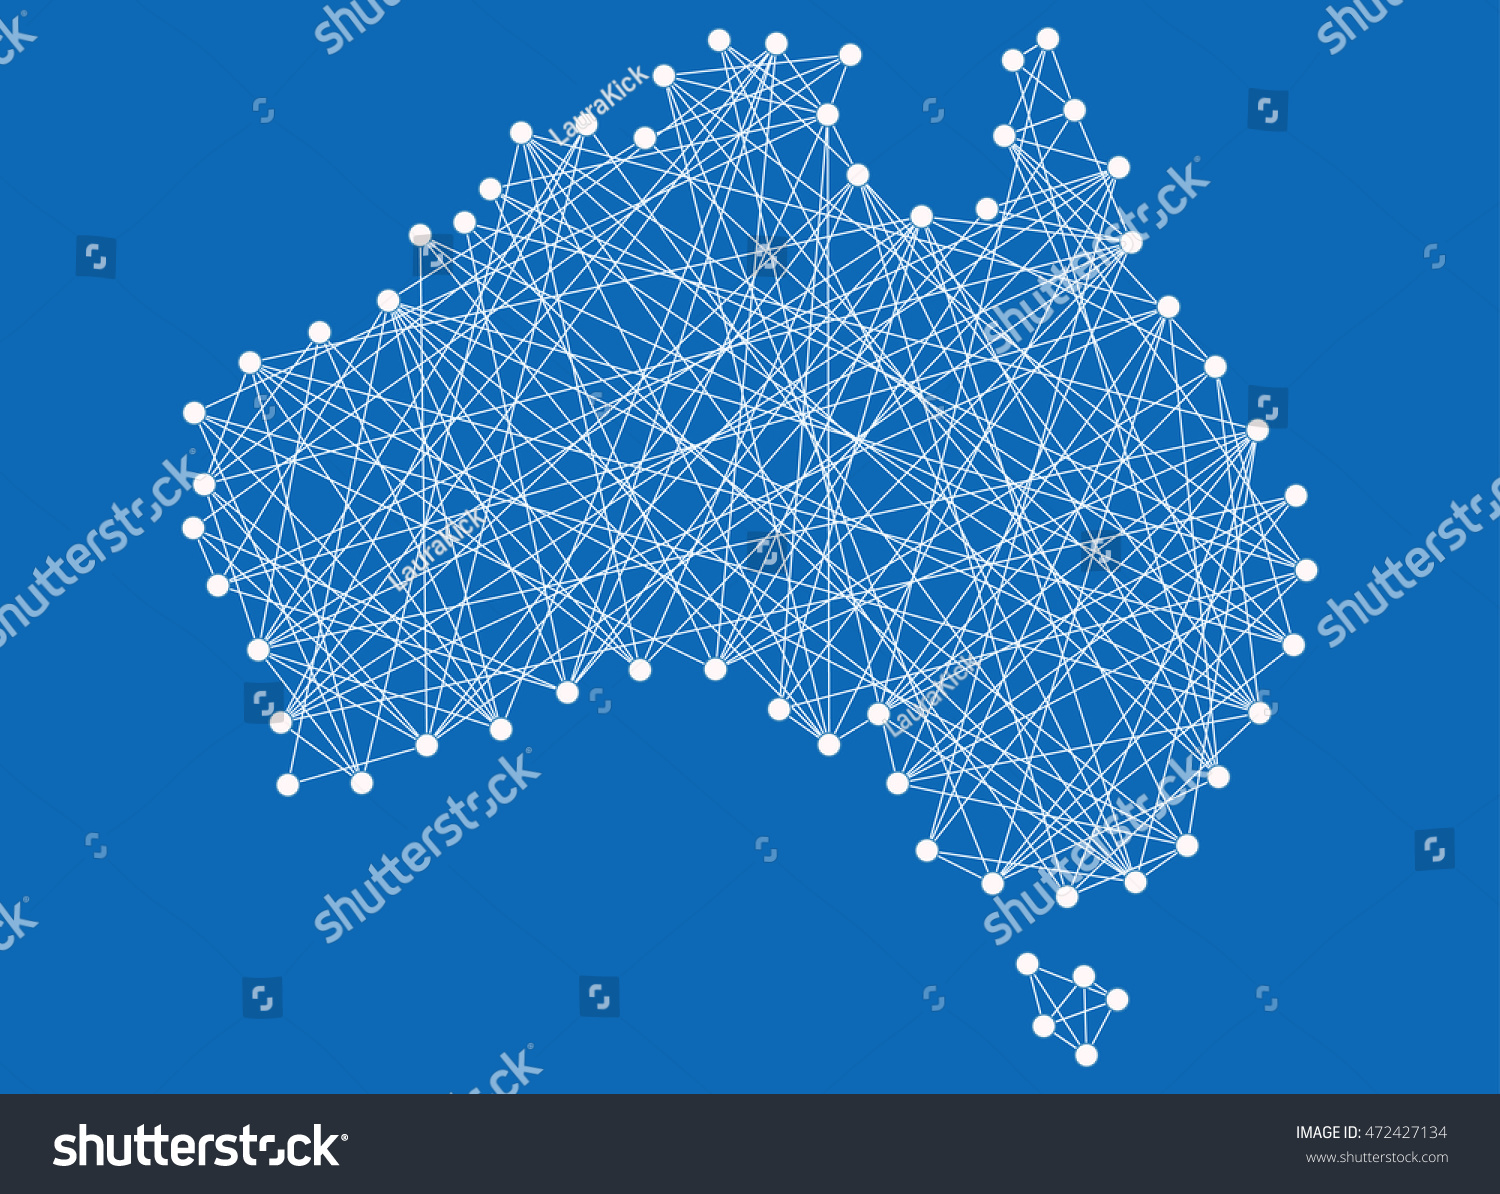 Map Australia Territory Made By Nails Stock Vector 472427134 ...